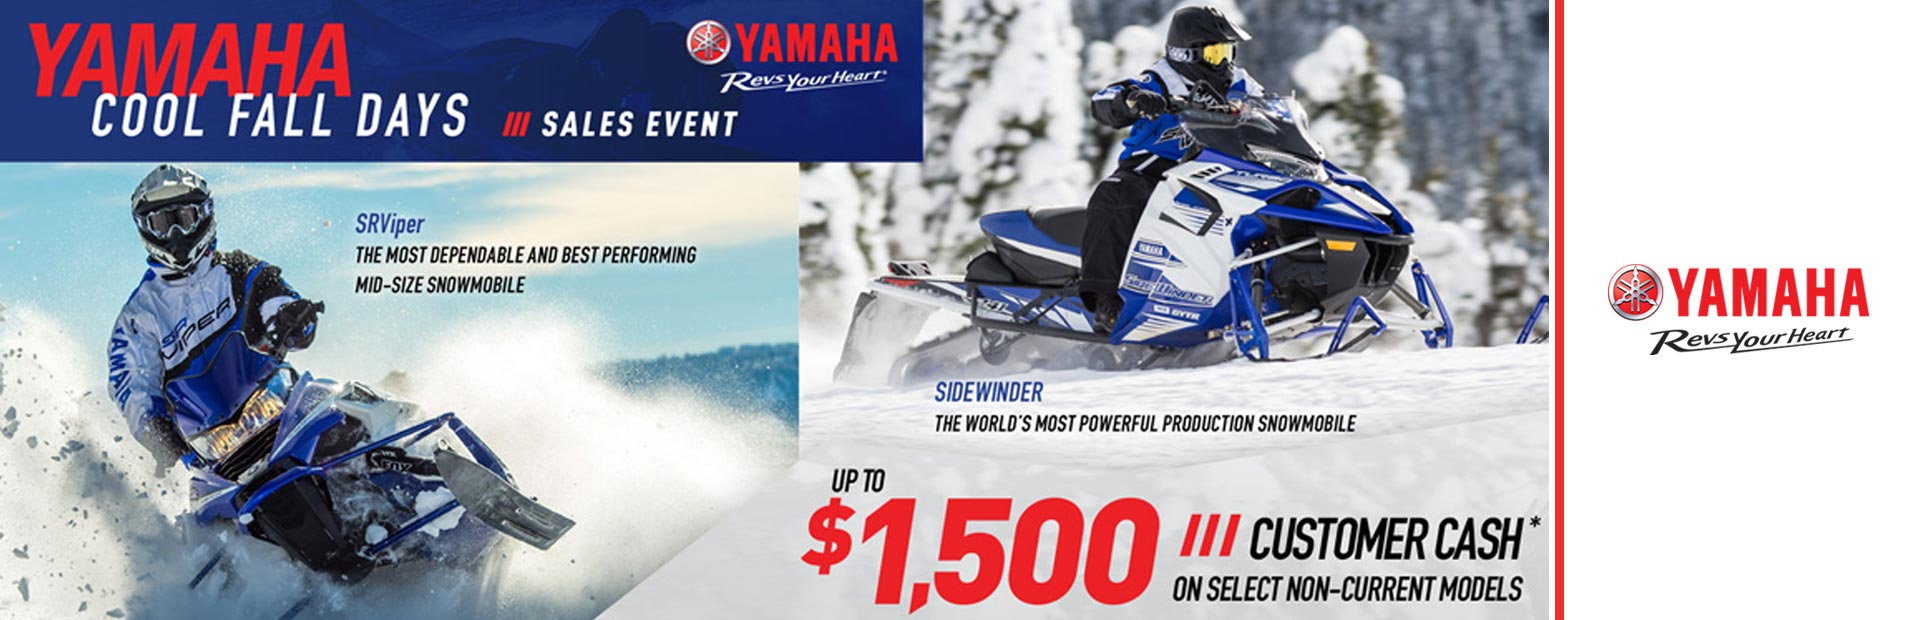 Yamaha: Customer Cash (Snowmobiles)